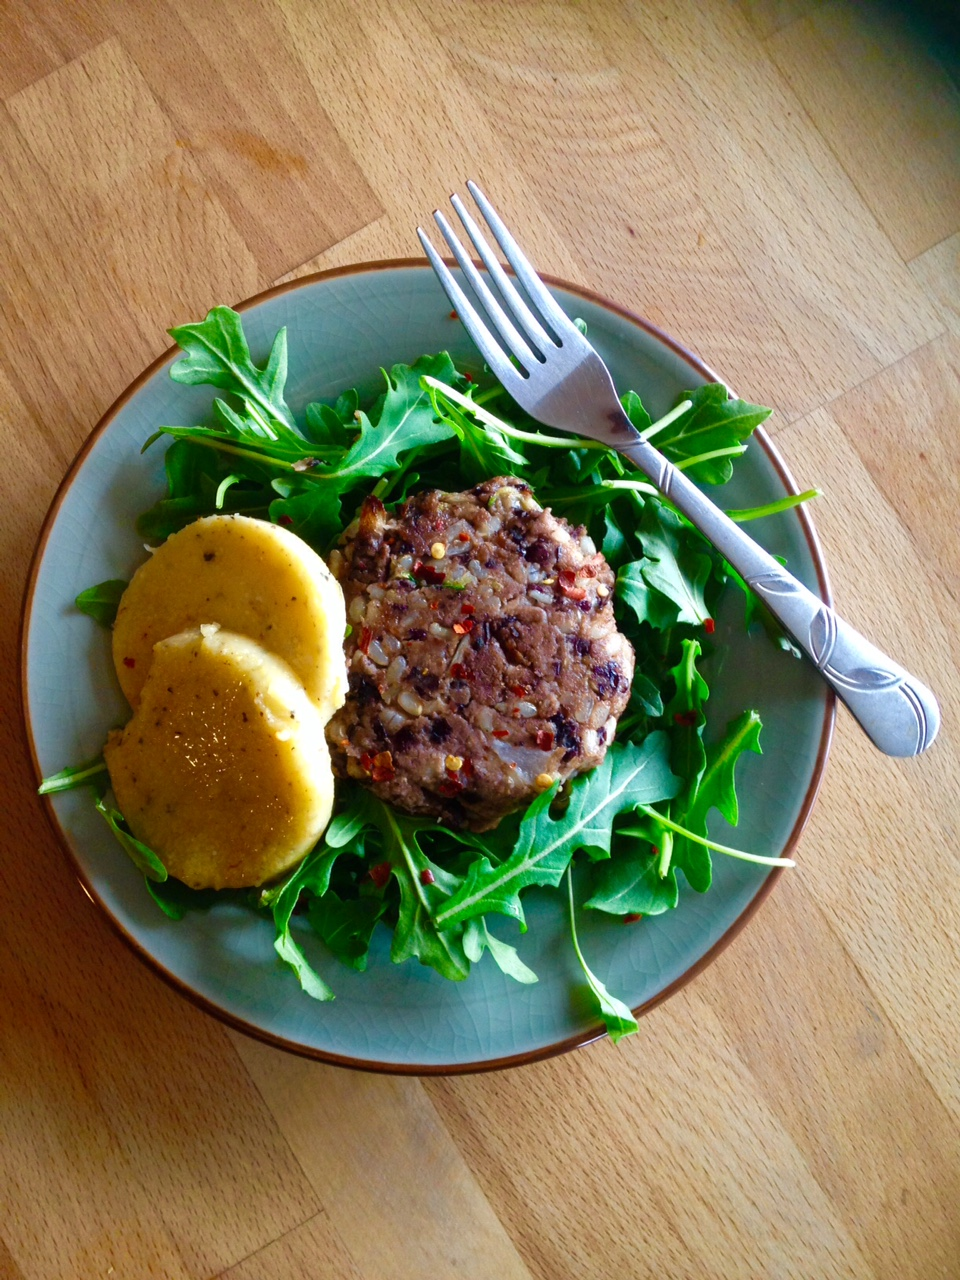 Kapha veggie burger served over a bed of arugula and a side of polenta.